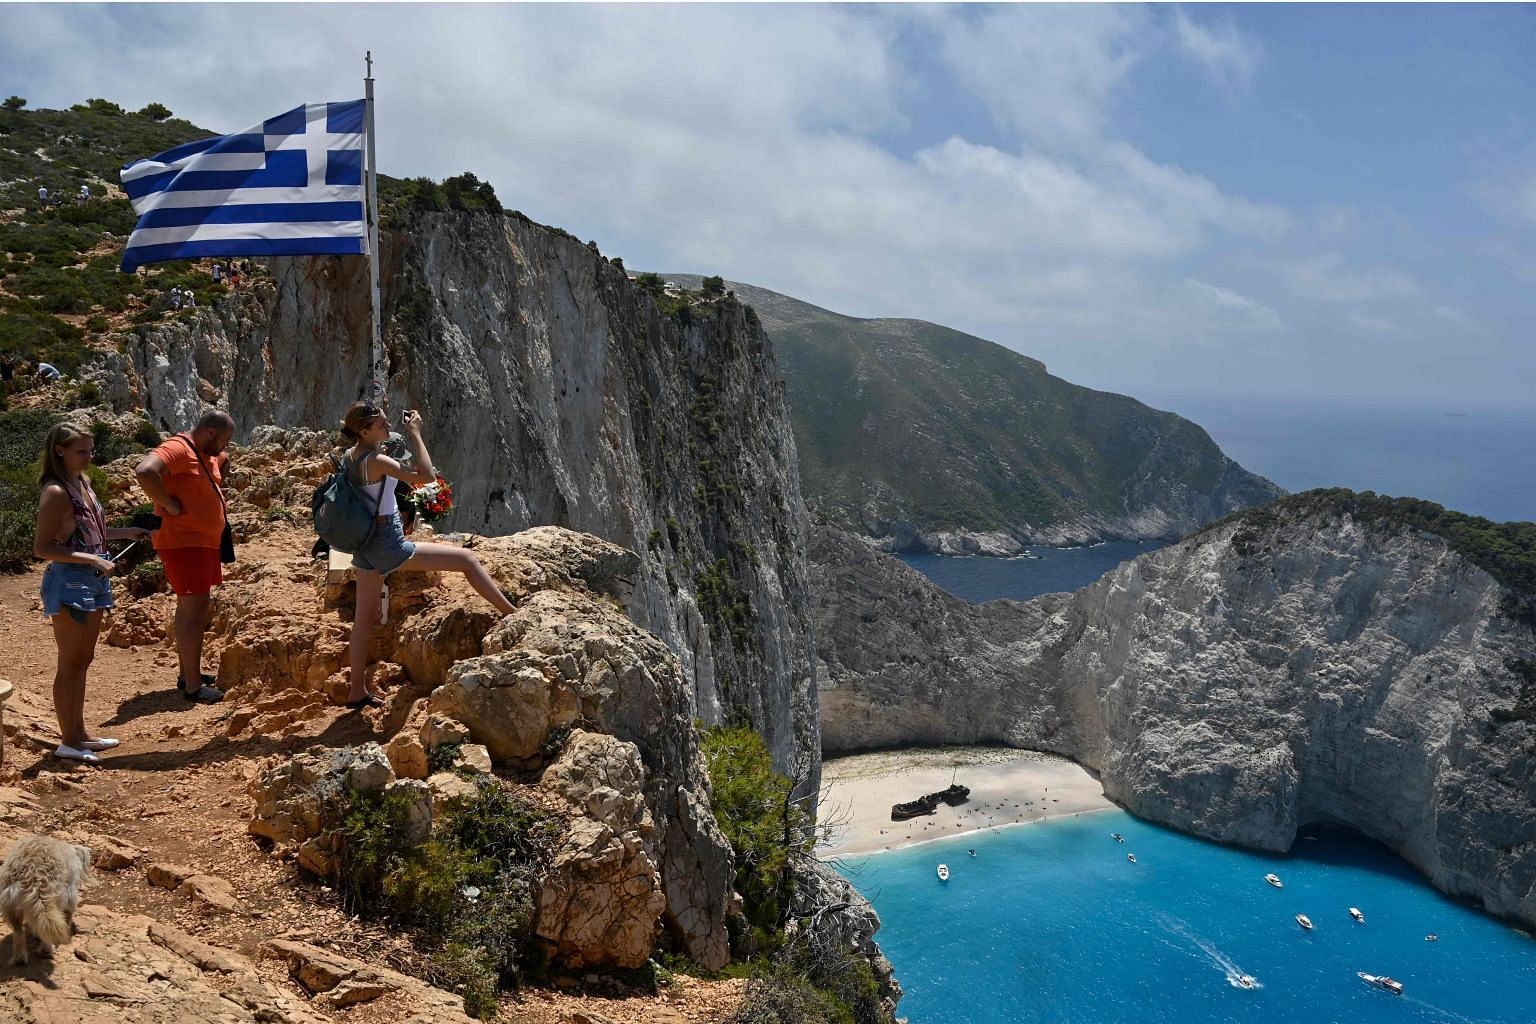 Amid the Covid-19 pandemic, tourism is slowly picking up again. There are now four boat departures daily to the famous Navagio (Shipwreck) beach on the Ionian island of Zakynthos, Greece, compared with the usual 20 for the season.